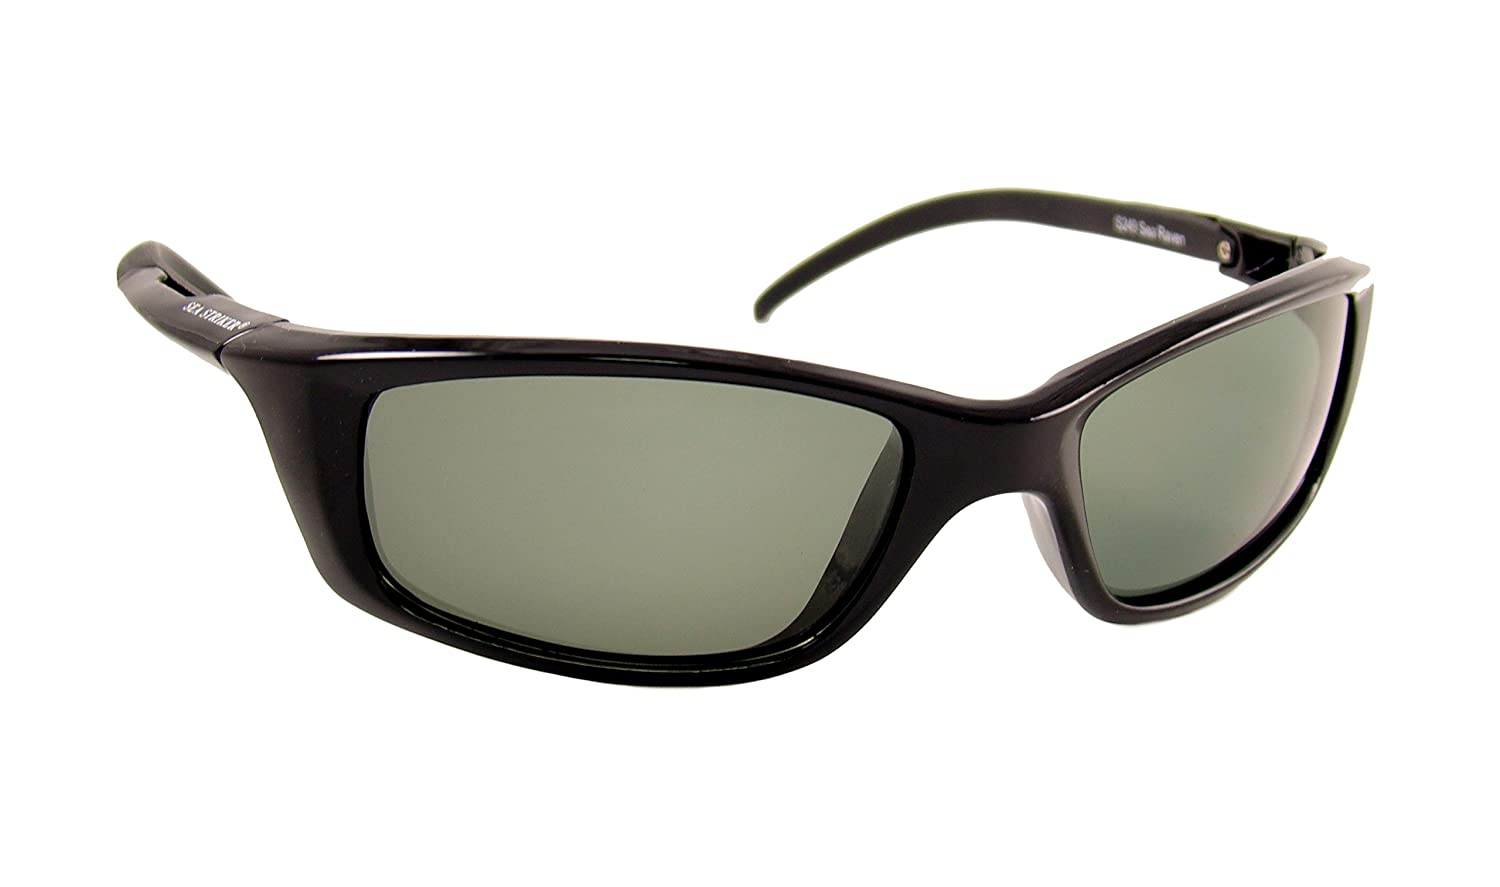 834e4afcea0 Amazon.com   Sea Striker Sea Raven Polarized Sunglasses